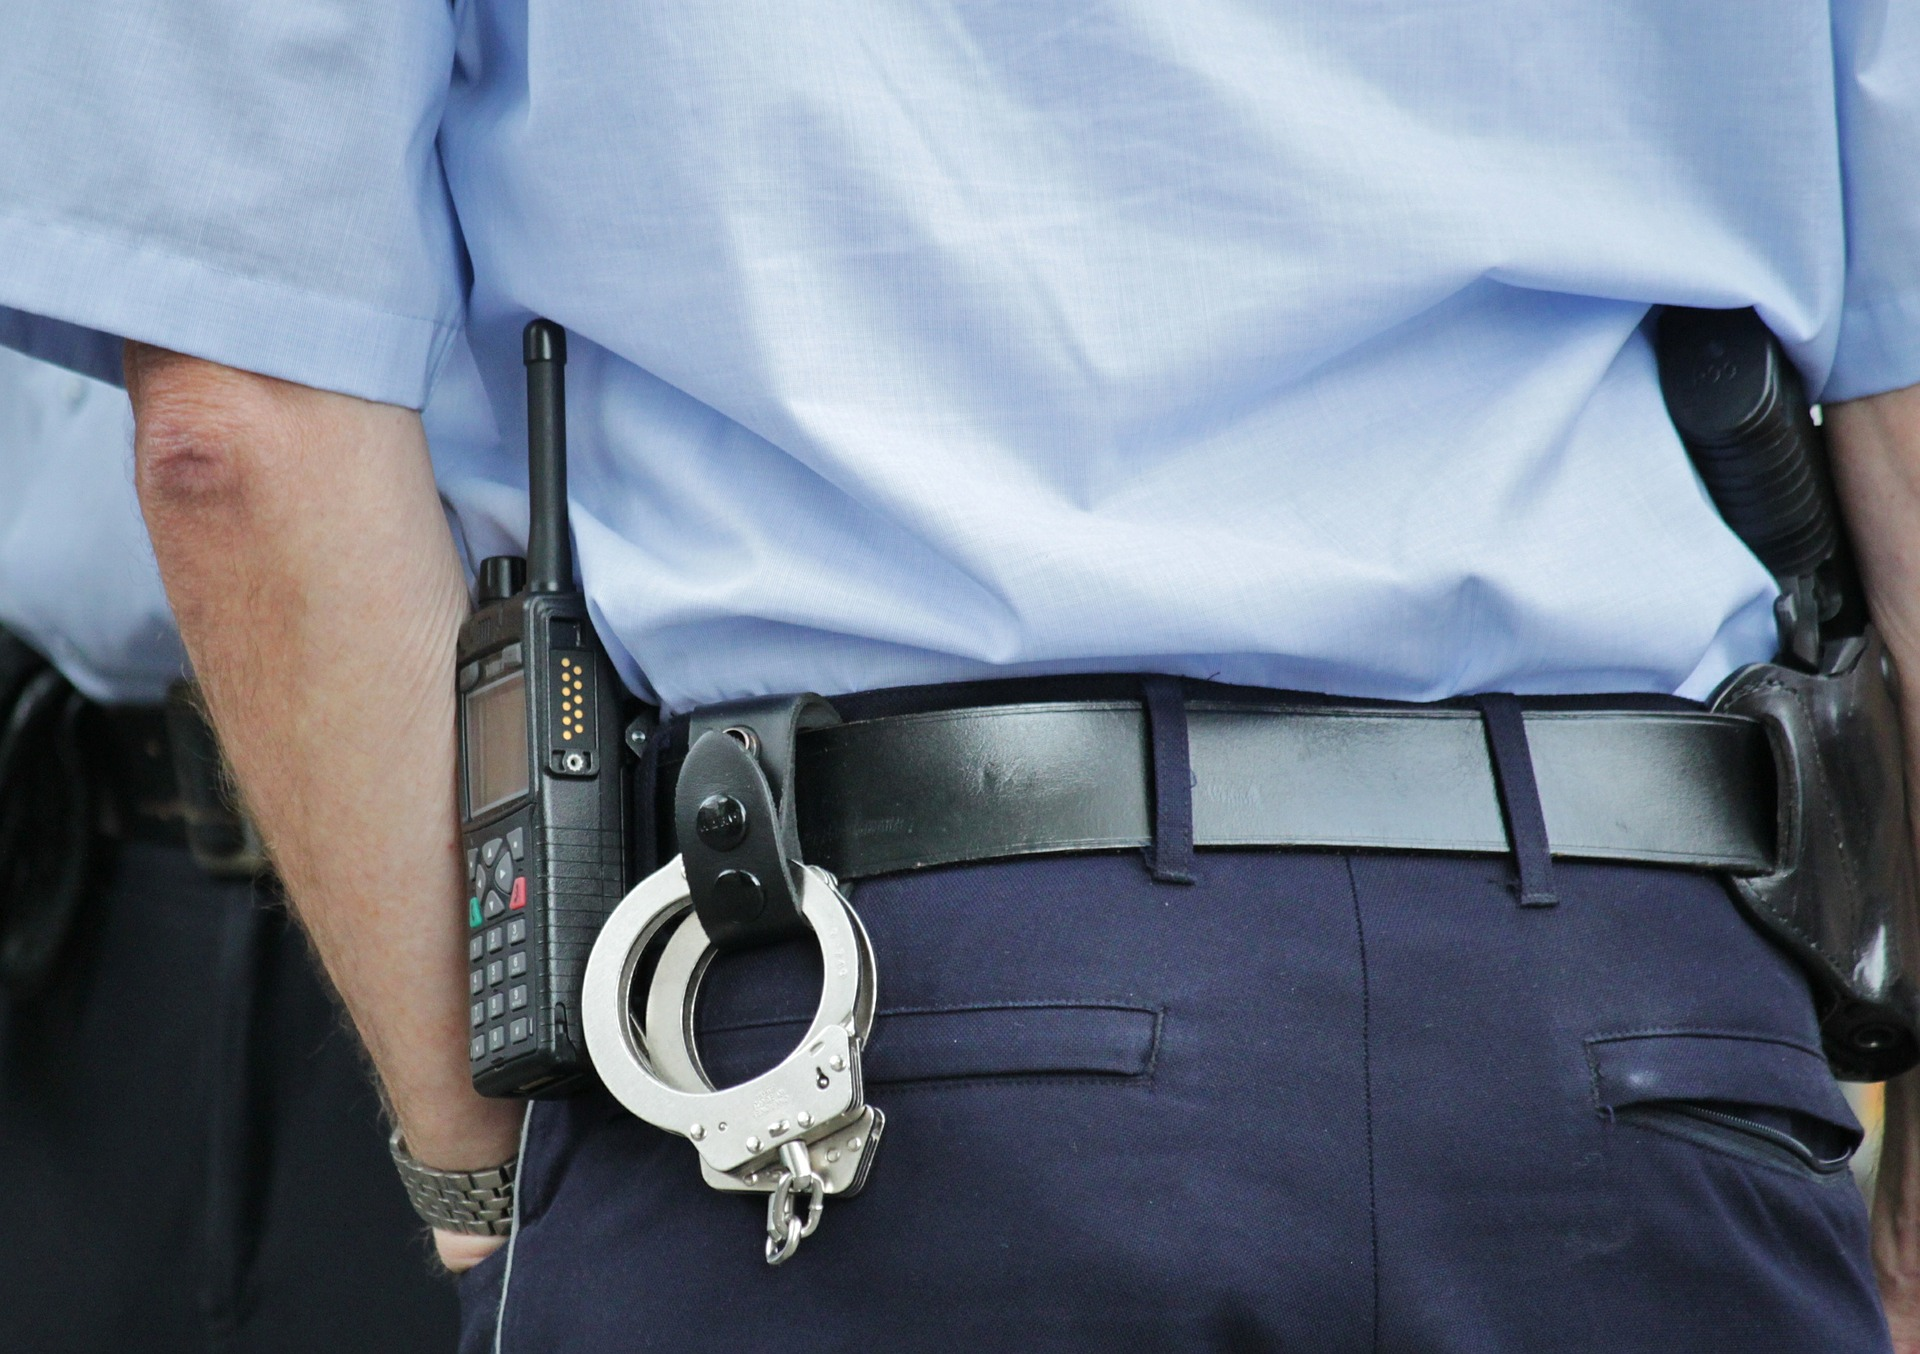 Handcuffs police officer